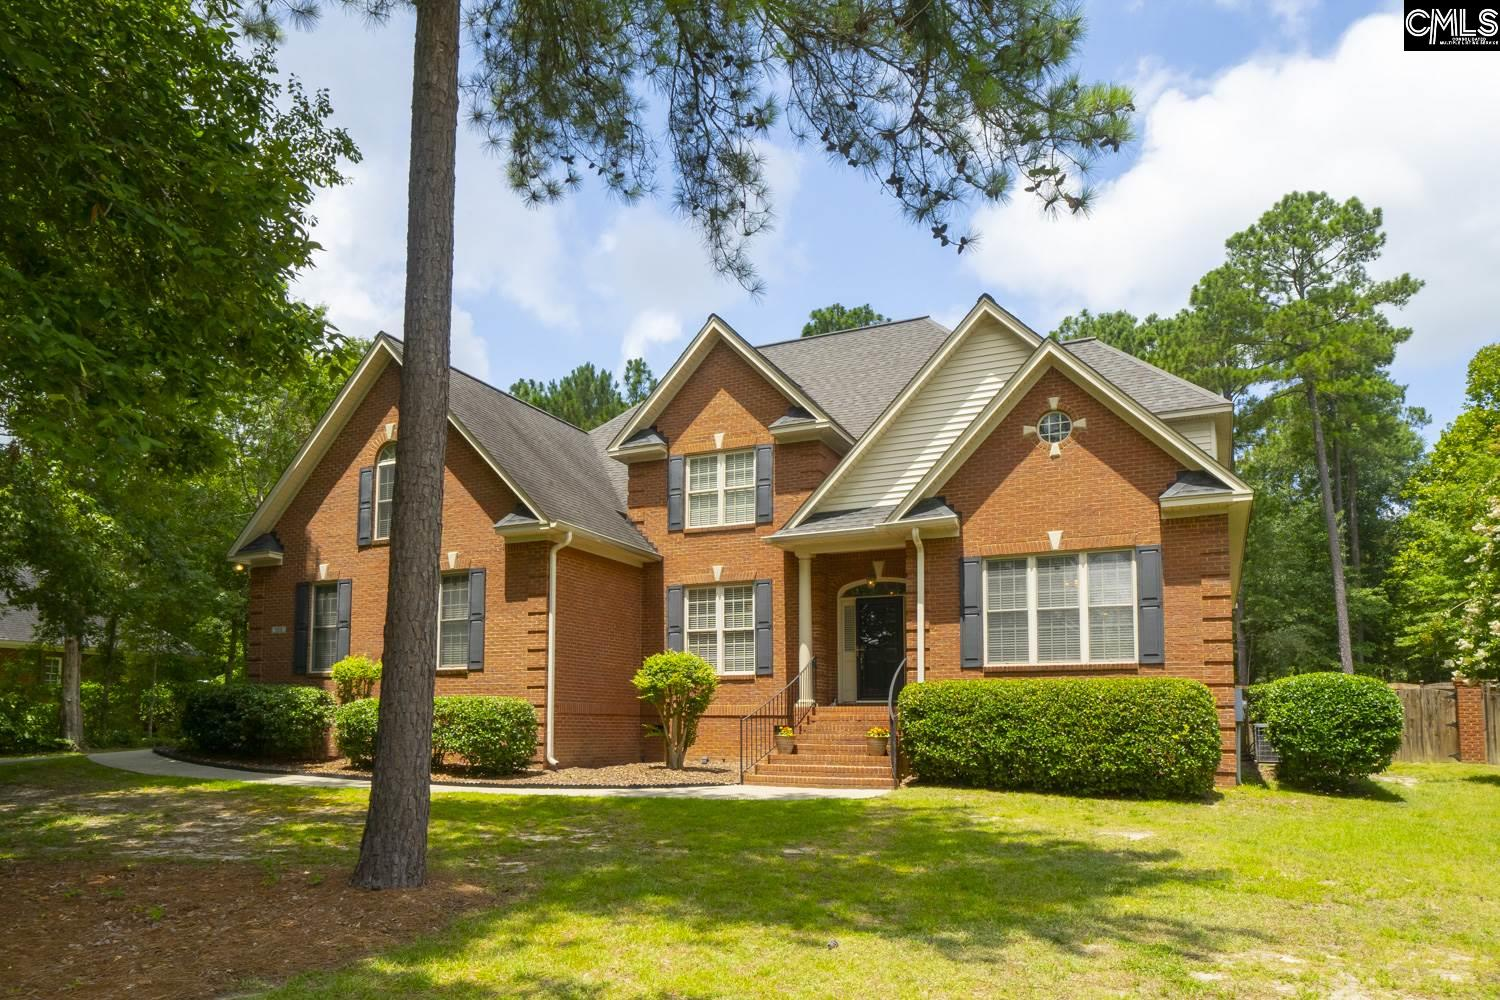 109 Winding Oak Blythewood, SC 29016